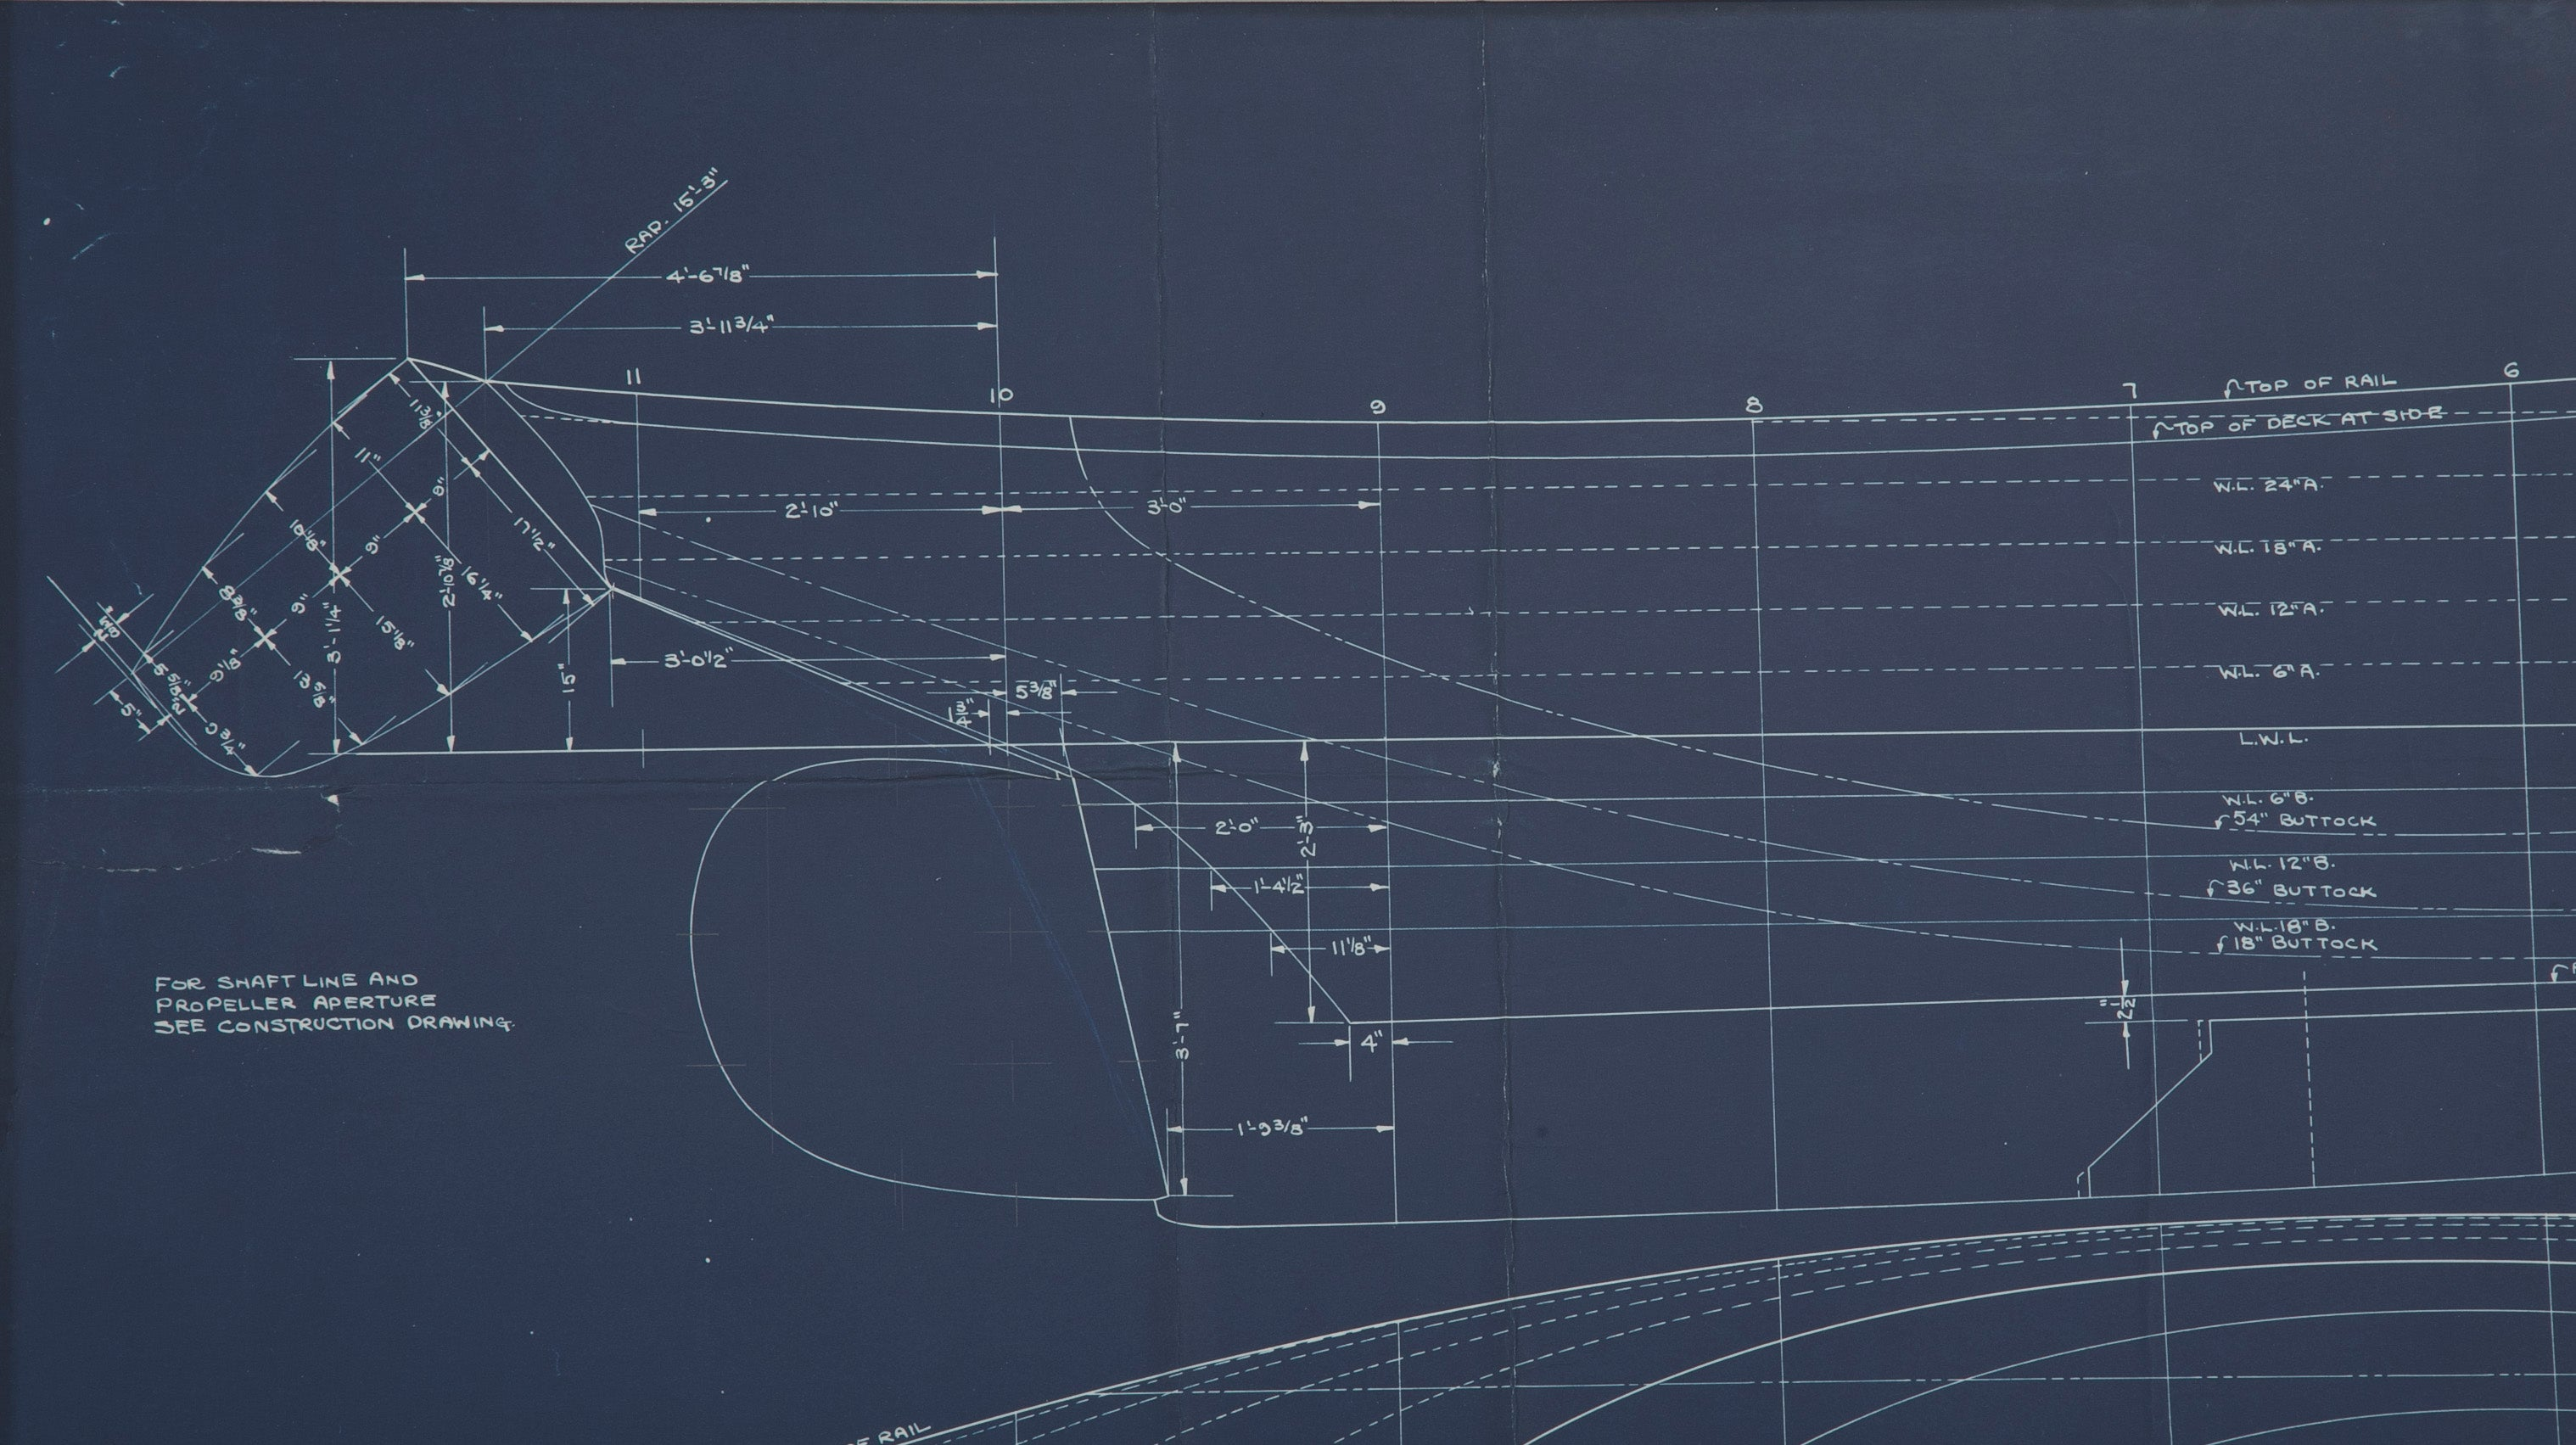 Original Blueprint of 35' Yawl by John Alden